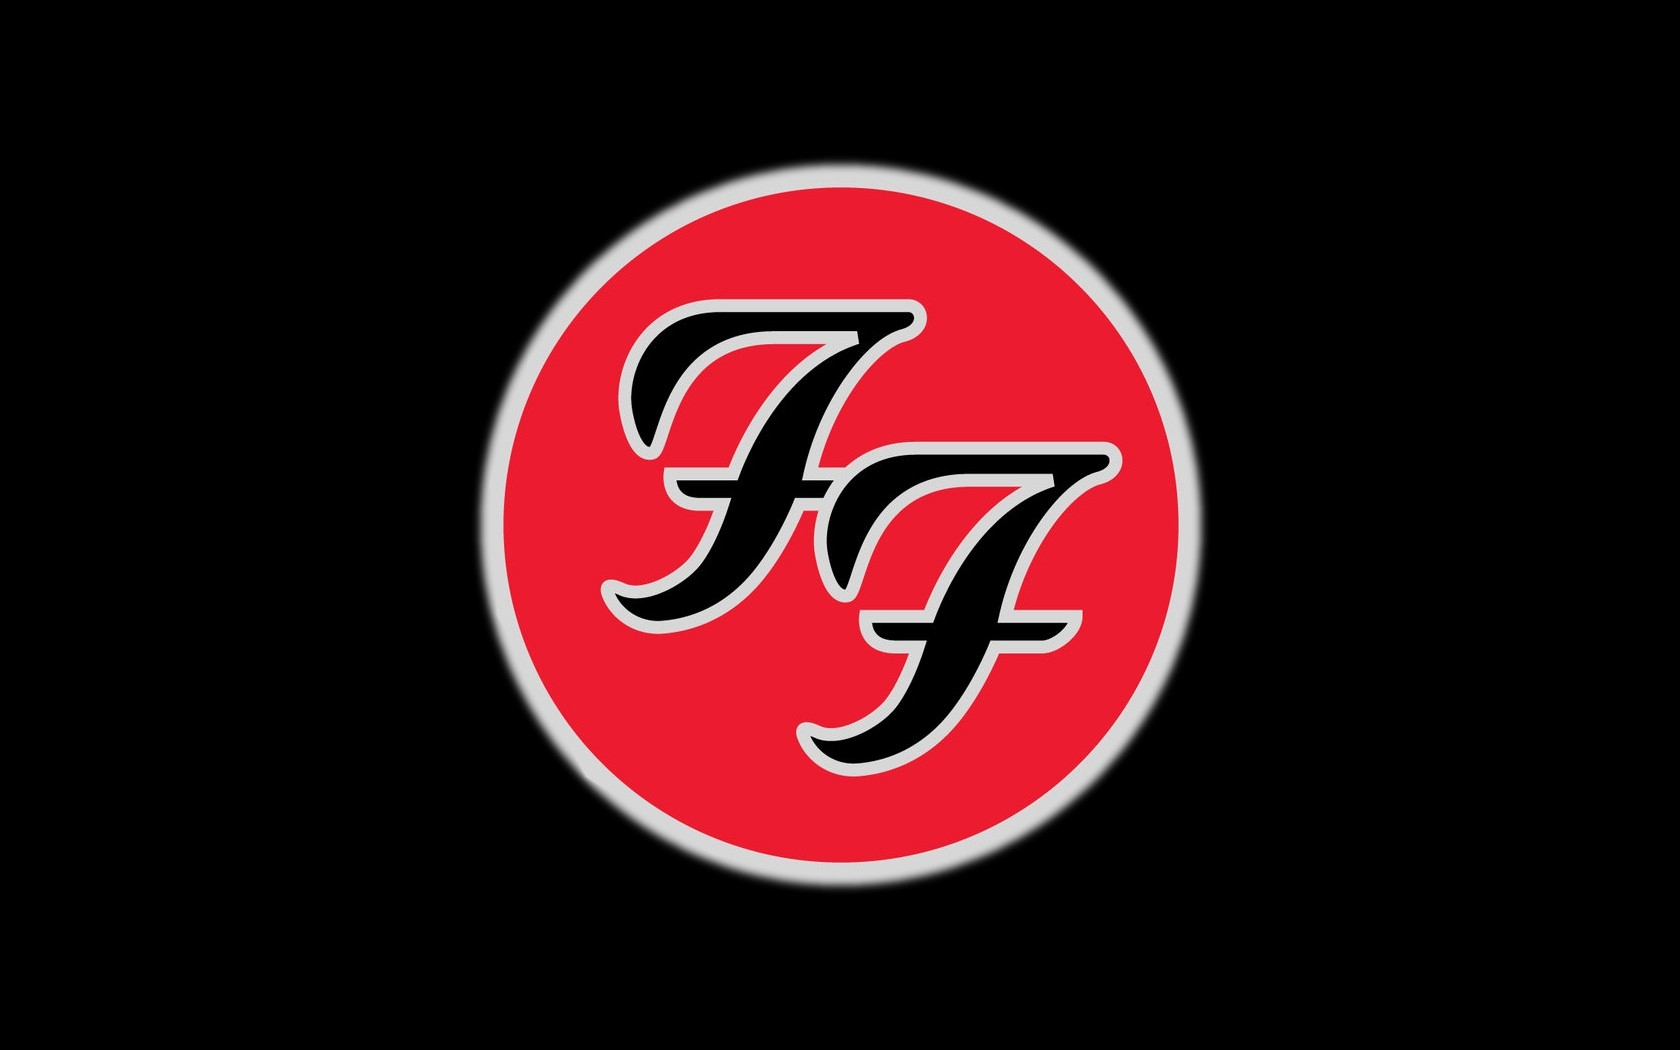 Download Wallpaper 1680x1050 foo fighters symbol icon cicle 1680x1050